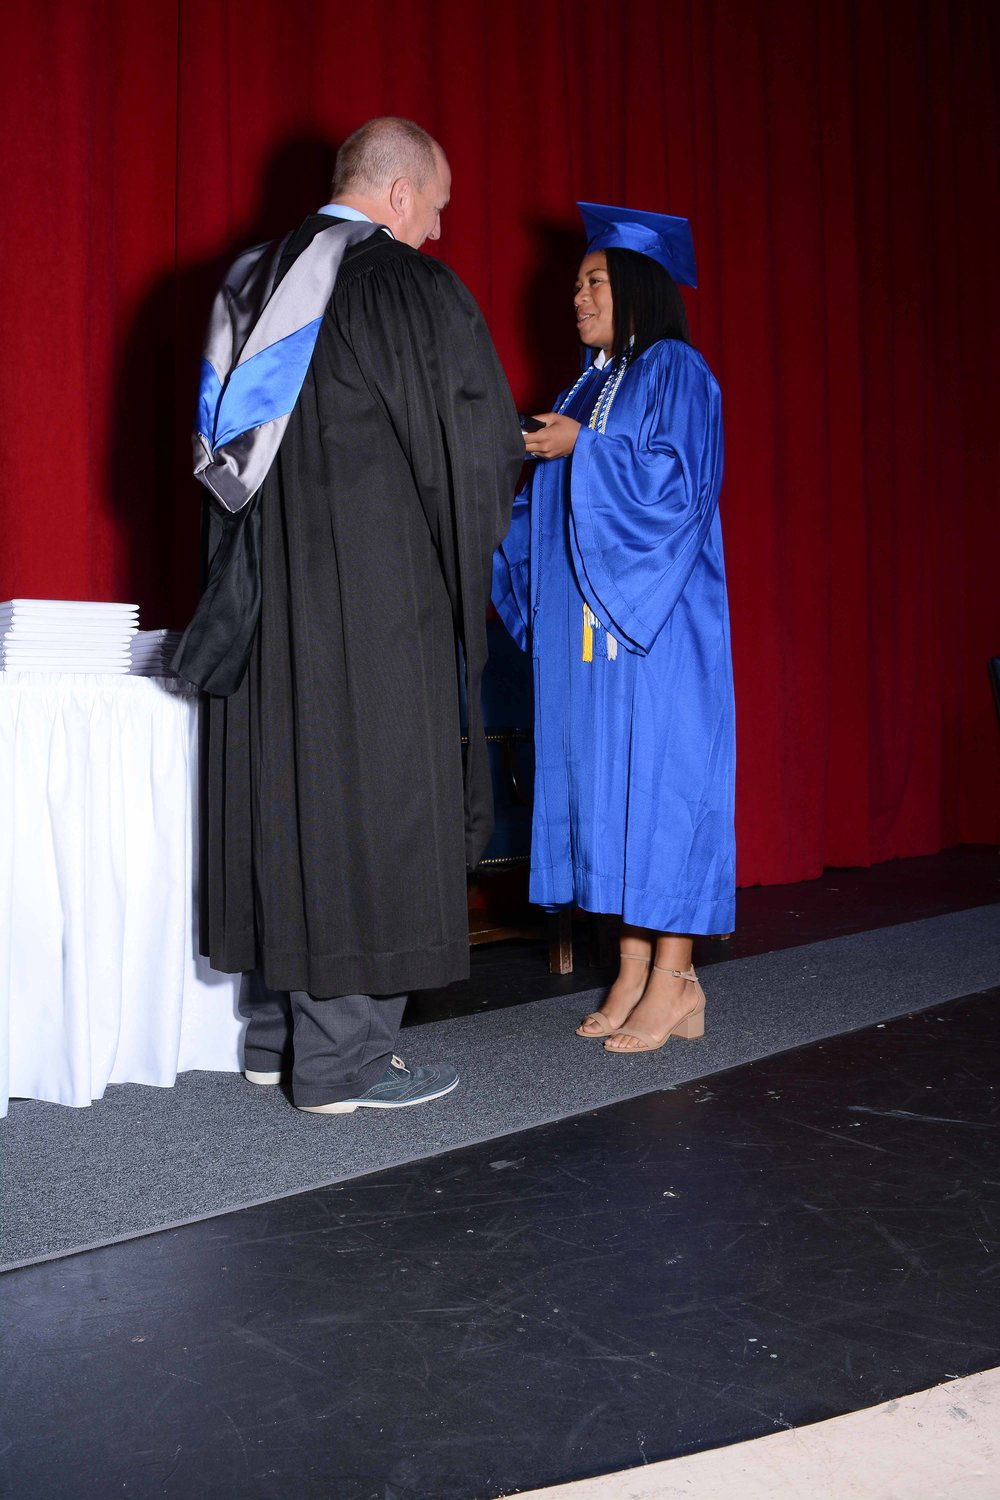 May14 Commencement79.jpg